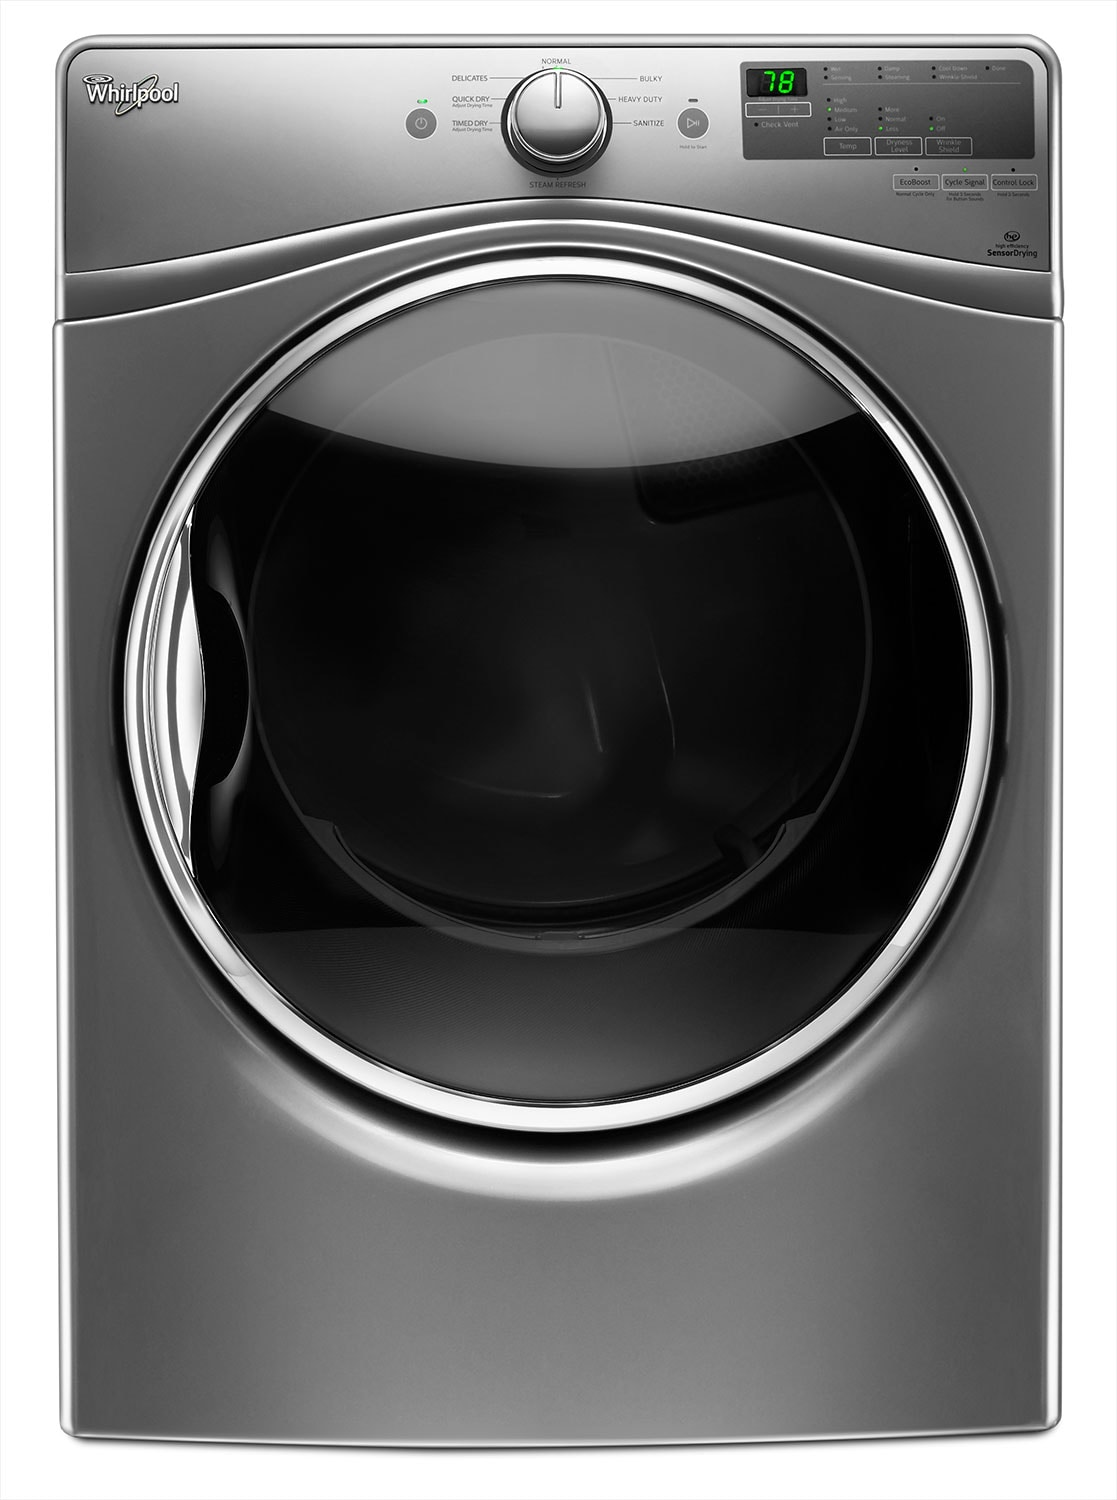 Whirlpool 7.4 Cu. Ft. Electric Dryer – YWED85HEFC